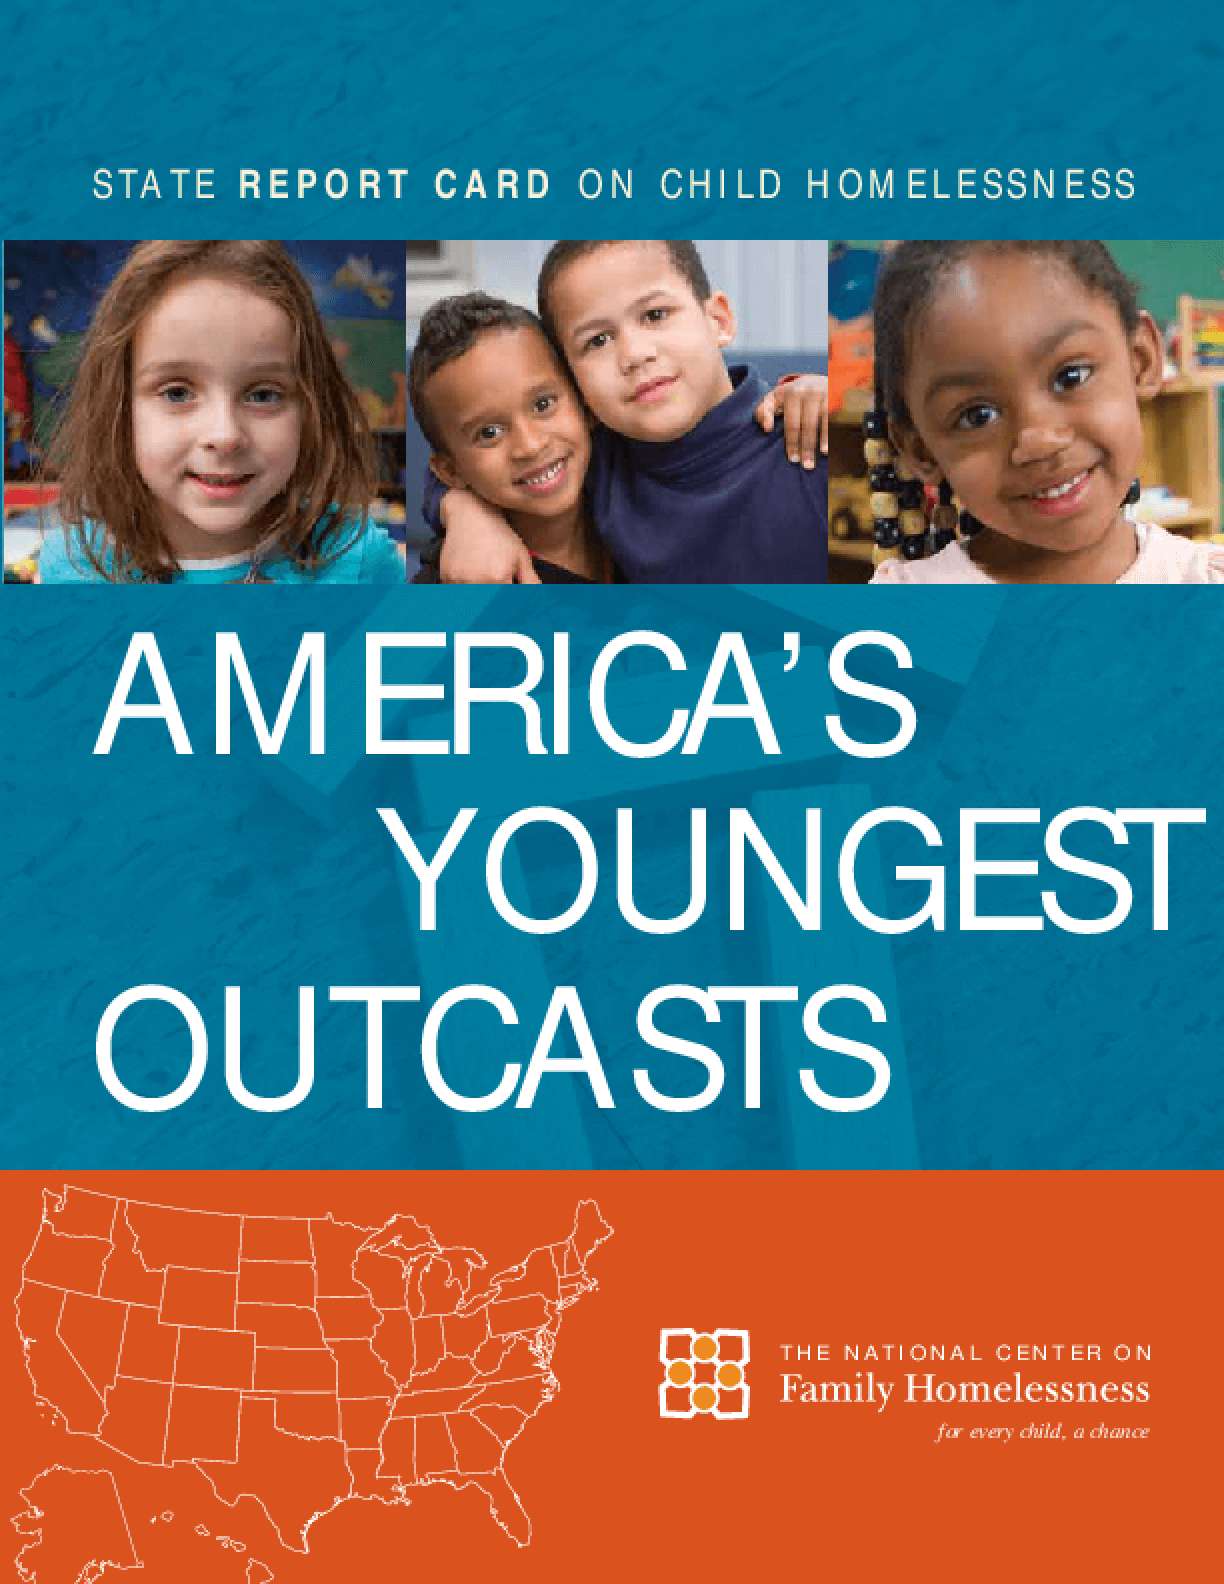 America's Youngest Outcasts: State Report Card on Child Homelessness